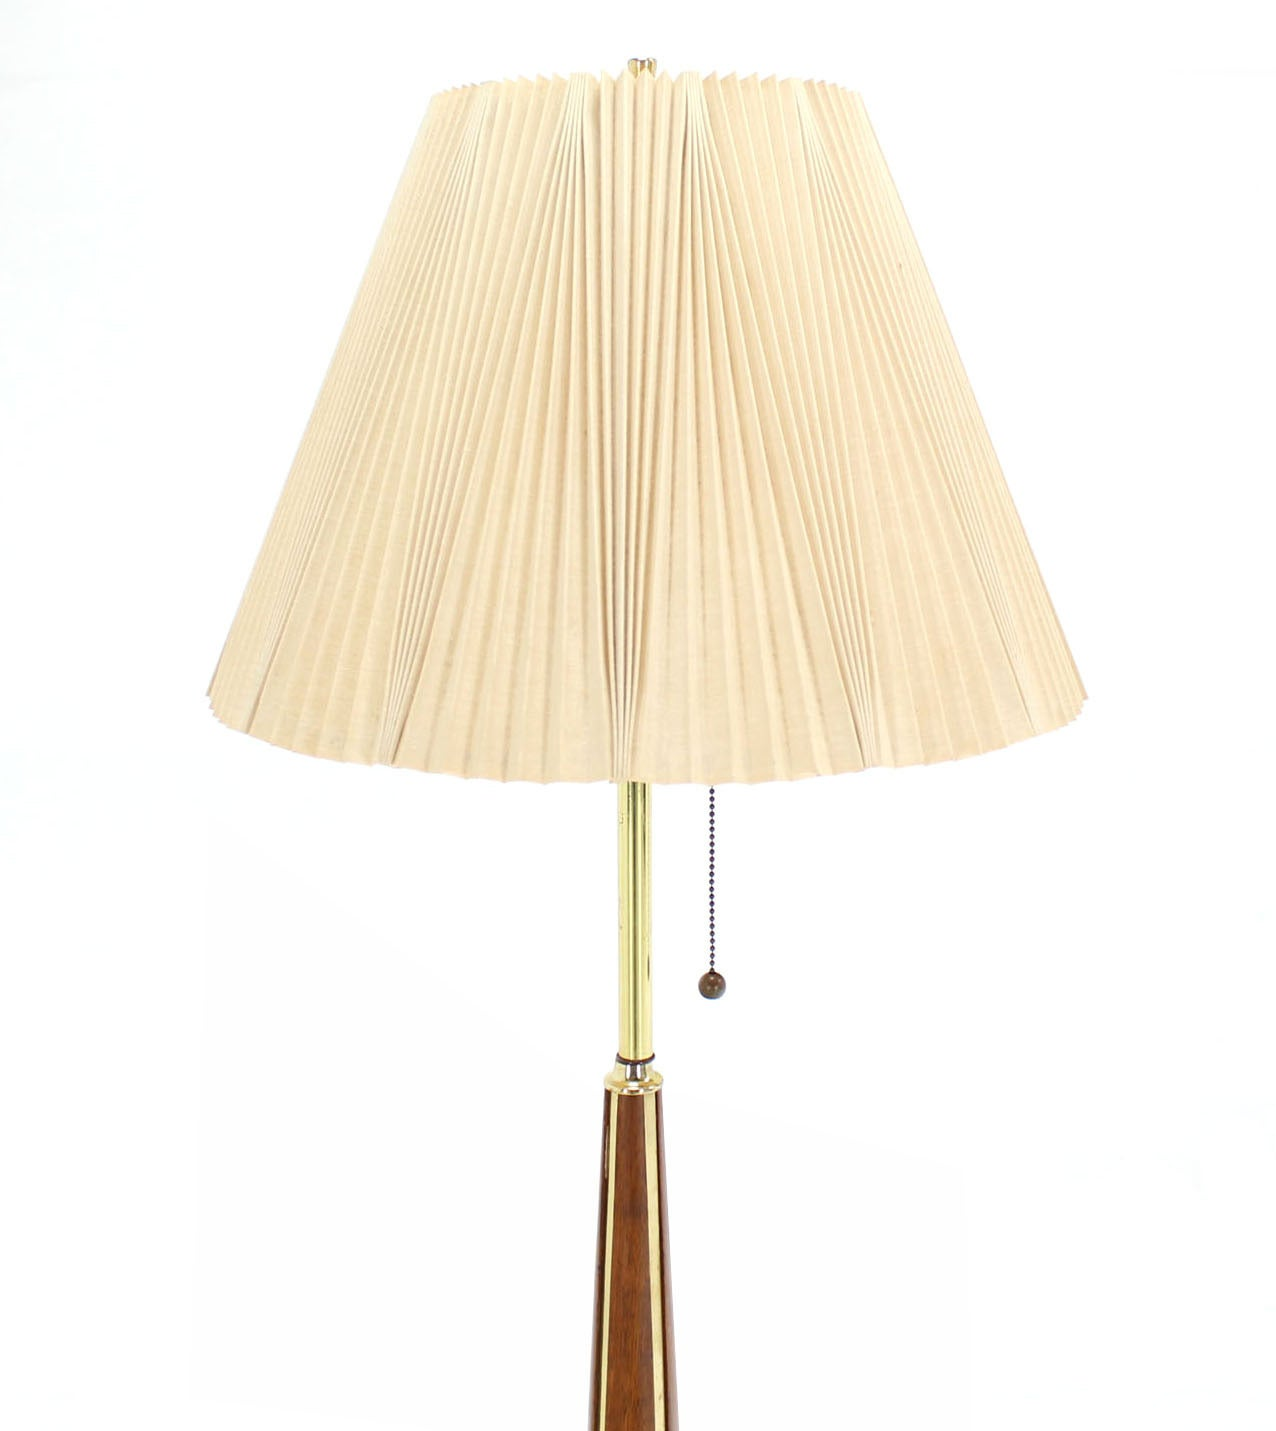 Brass Floor Lamp Mid Century: Walnut And Brass Mid-Century Modern Floor Lamp At 1stdibs